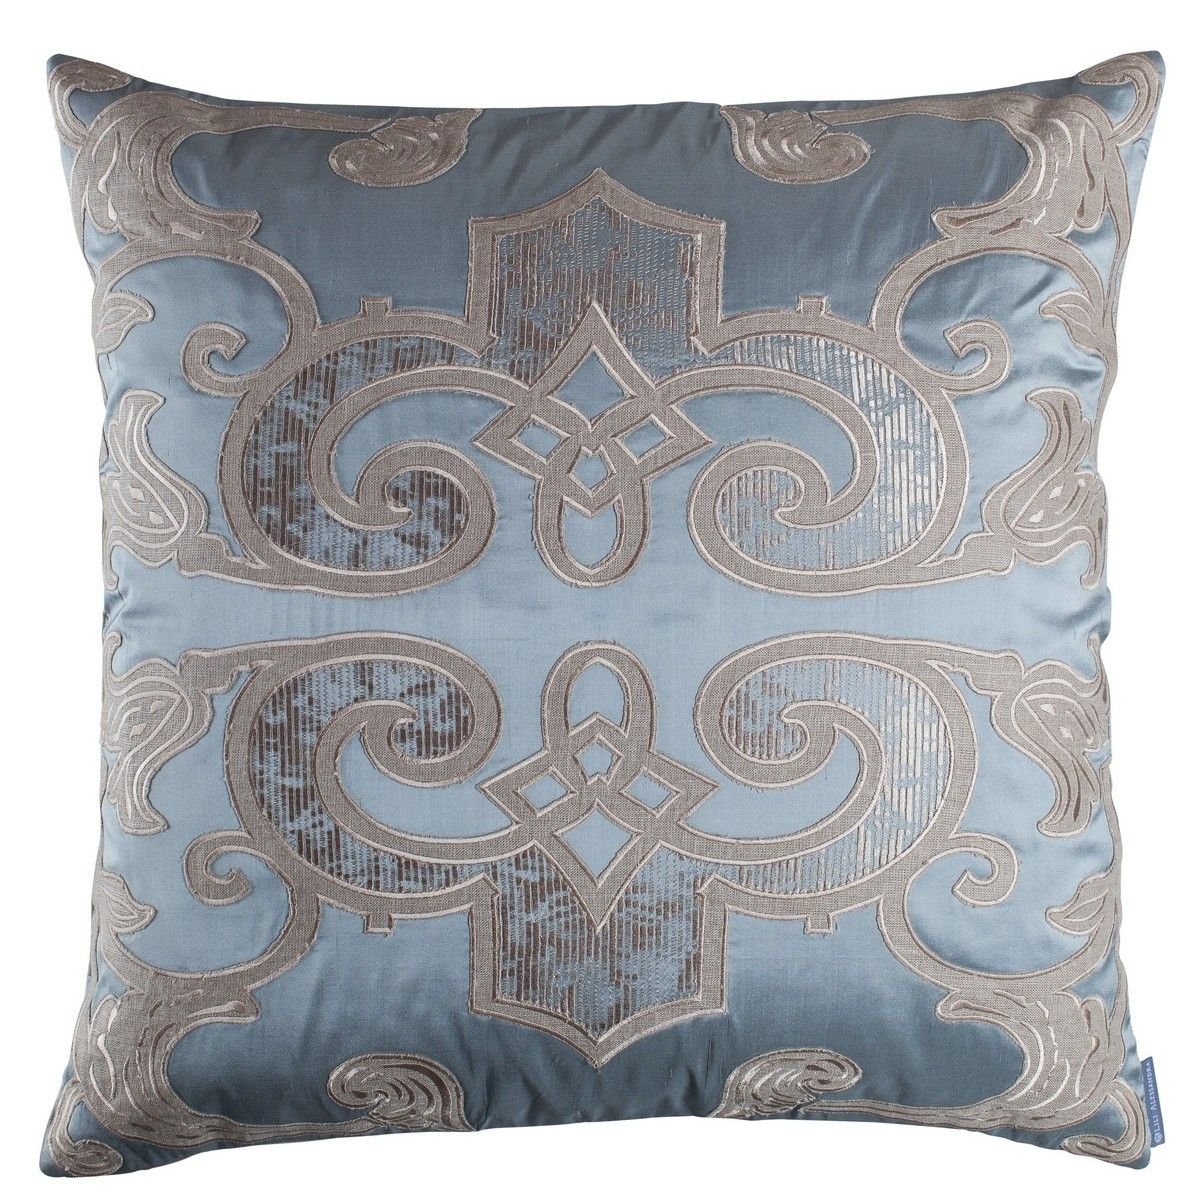 the cover pictures buy in design cotton furniture best throw decorative full dark and pillow decoration home linen abstract size decor geometric blue to of ideas navy pillows cushion